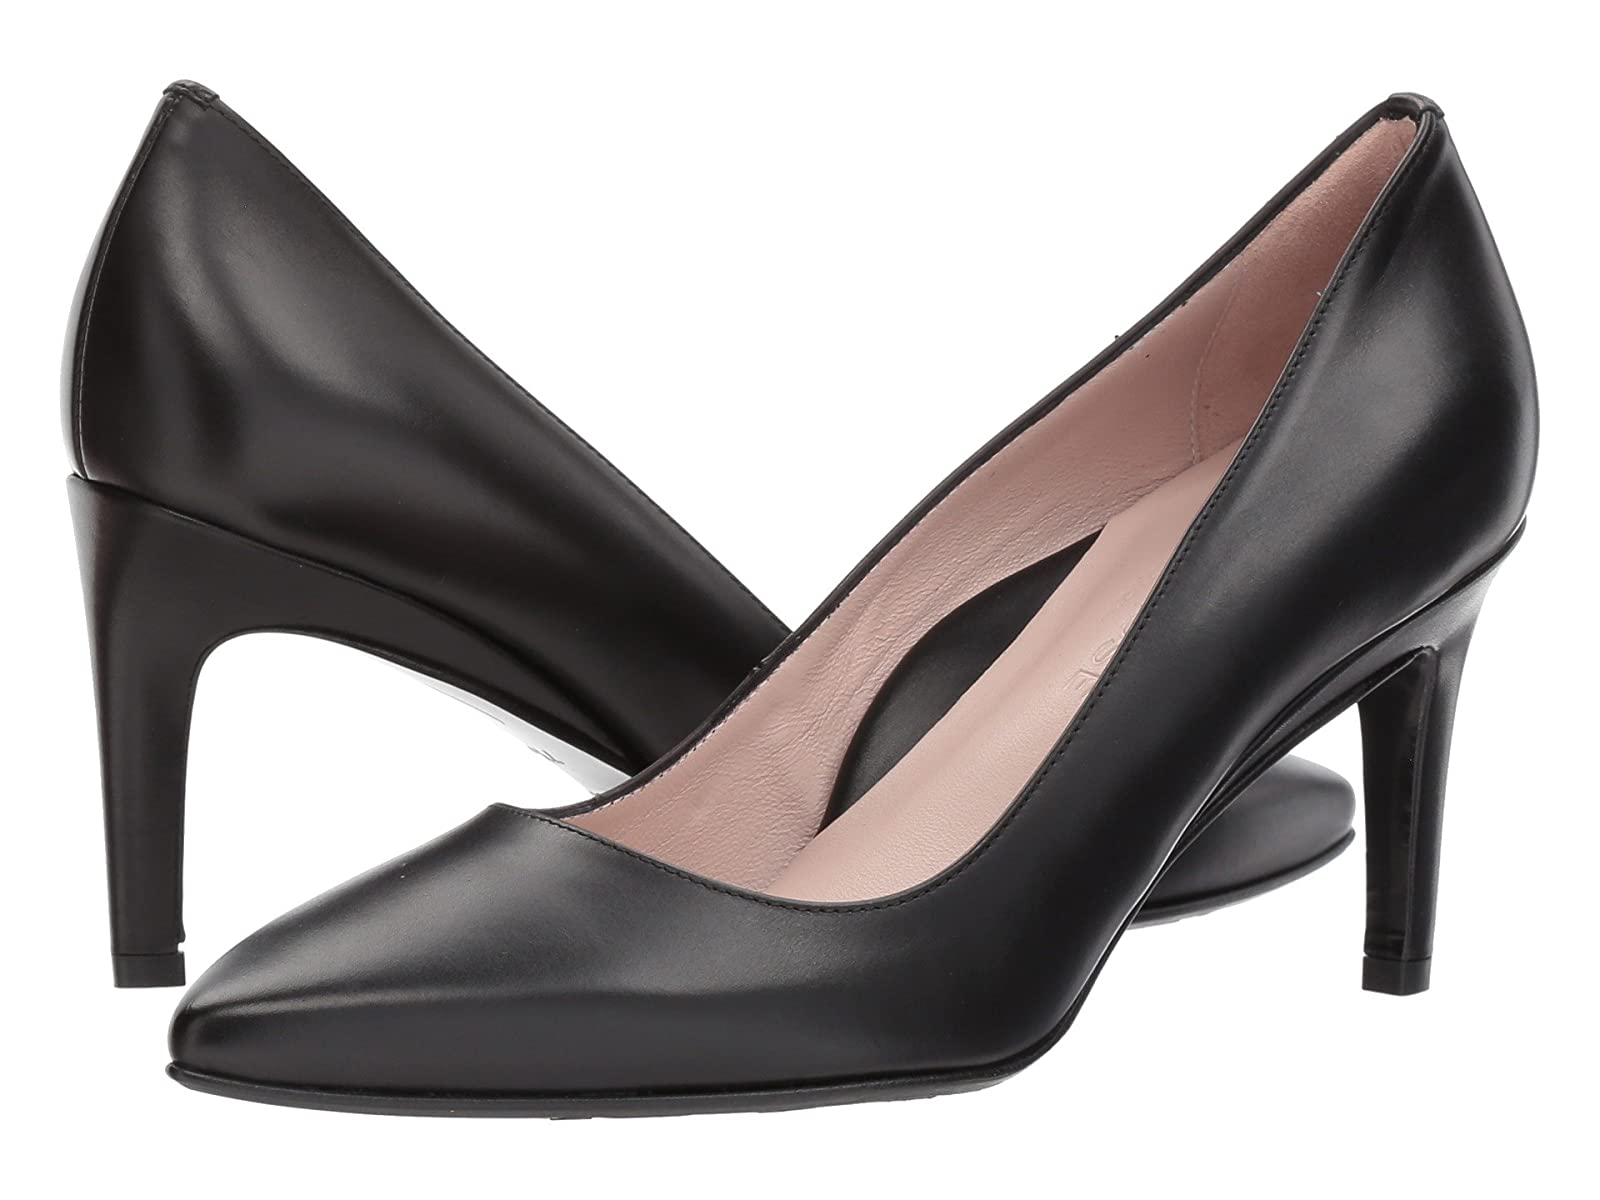 Taryn Rose Gabriela by Taryn Rose CollectionAtmospheric grades have affordable shoes